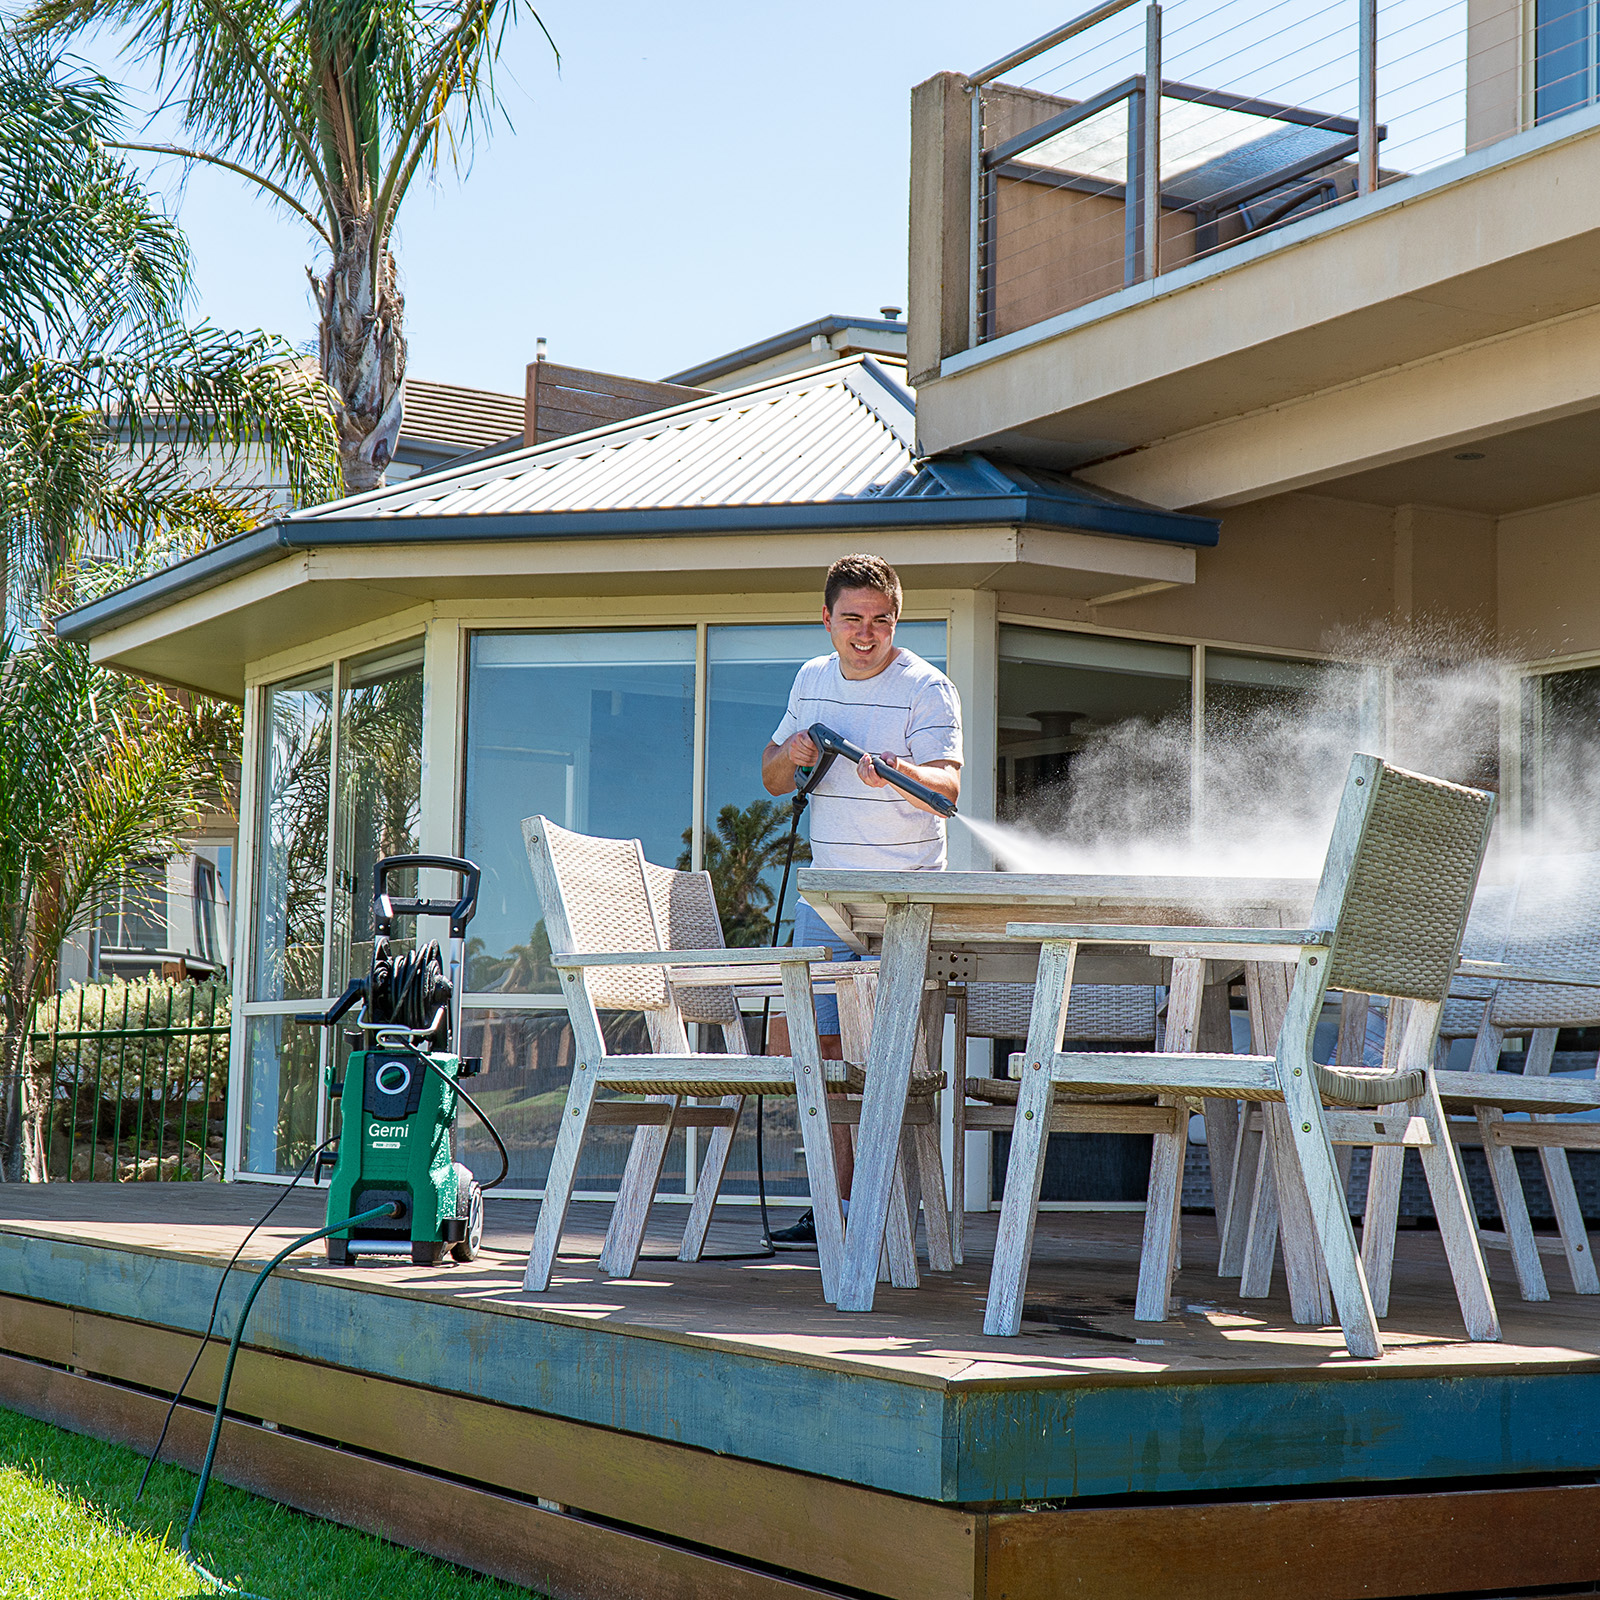 Gerni 7000 - Application Usage - High Pressure Washer Outdoor Furniture